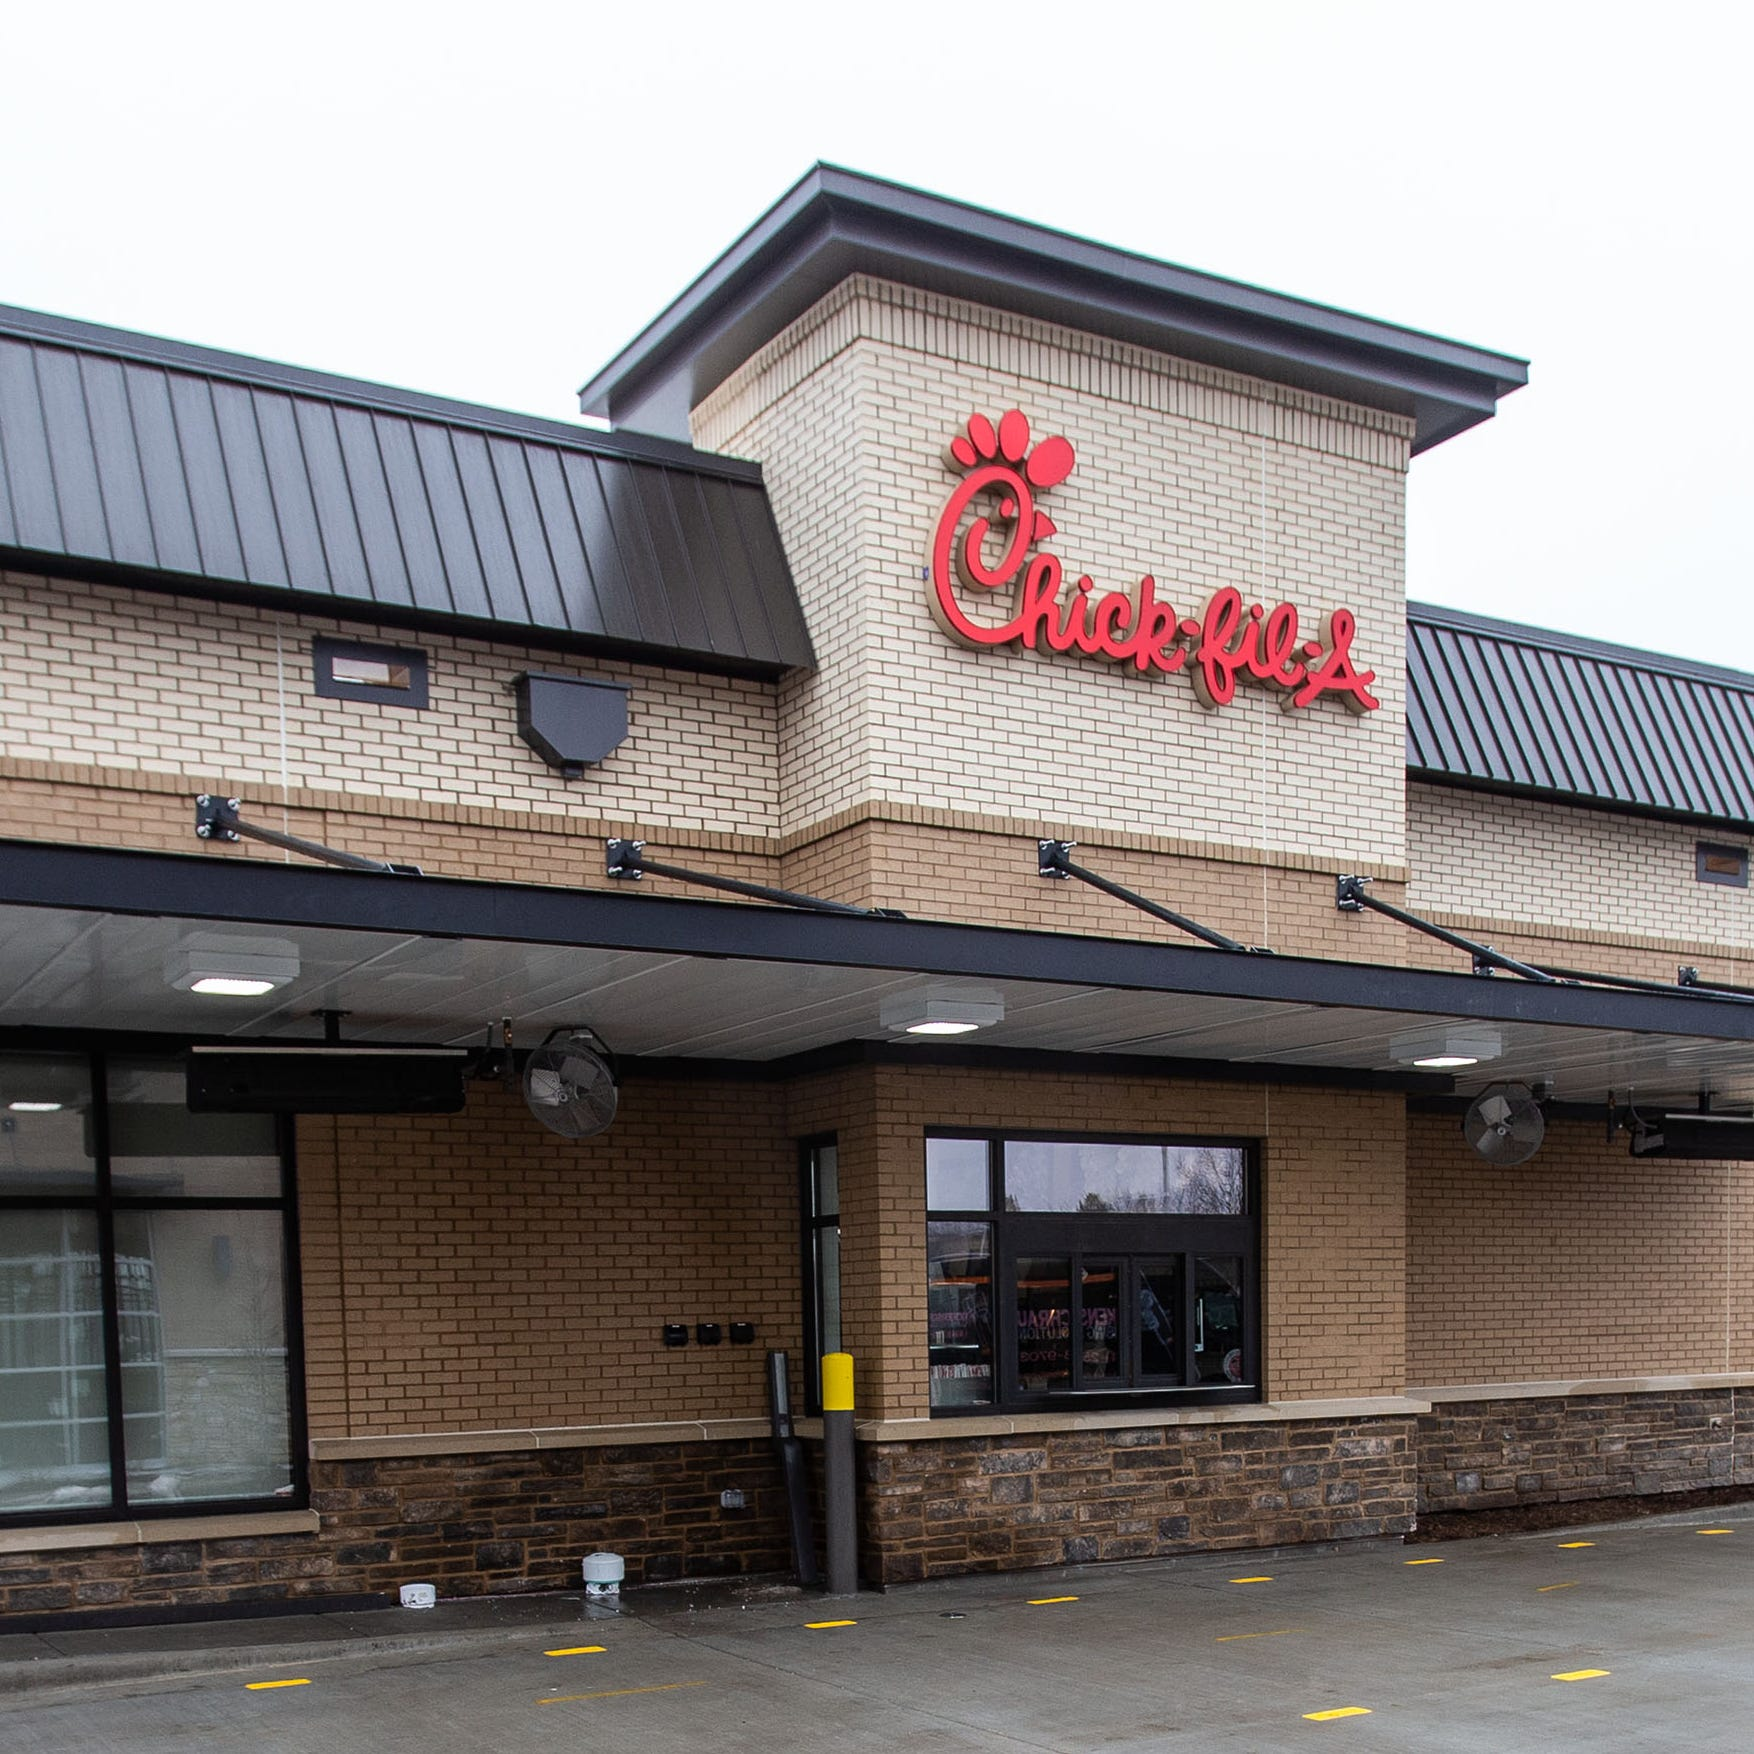 Plans for a Chick-fil-A received negatively so far in Glendale